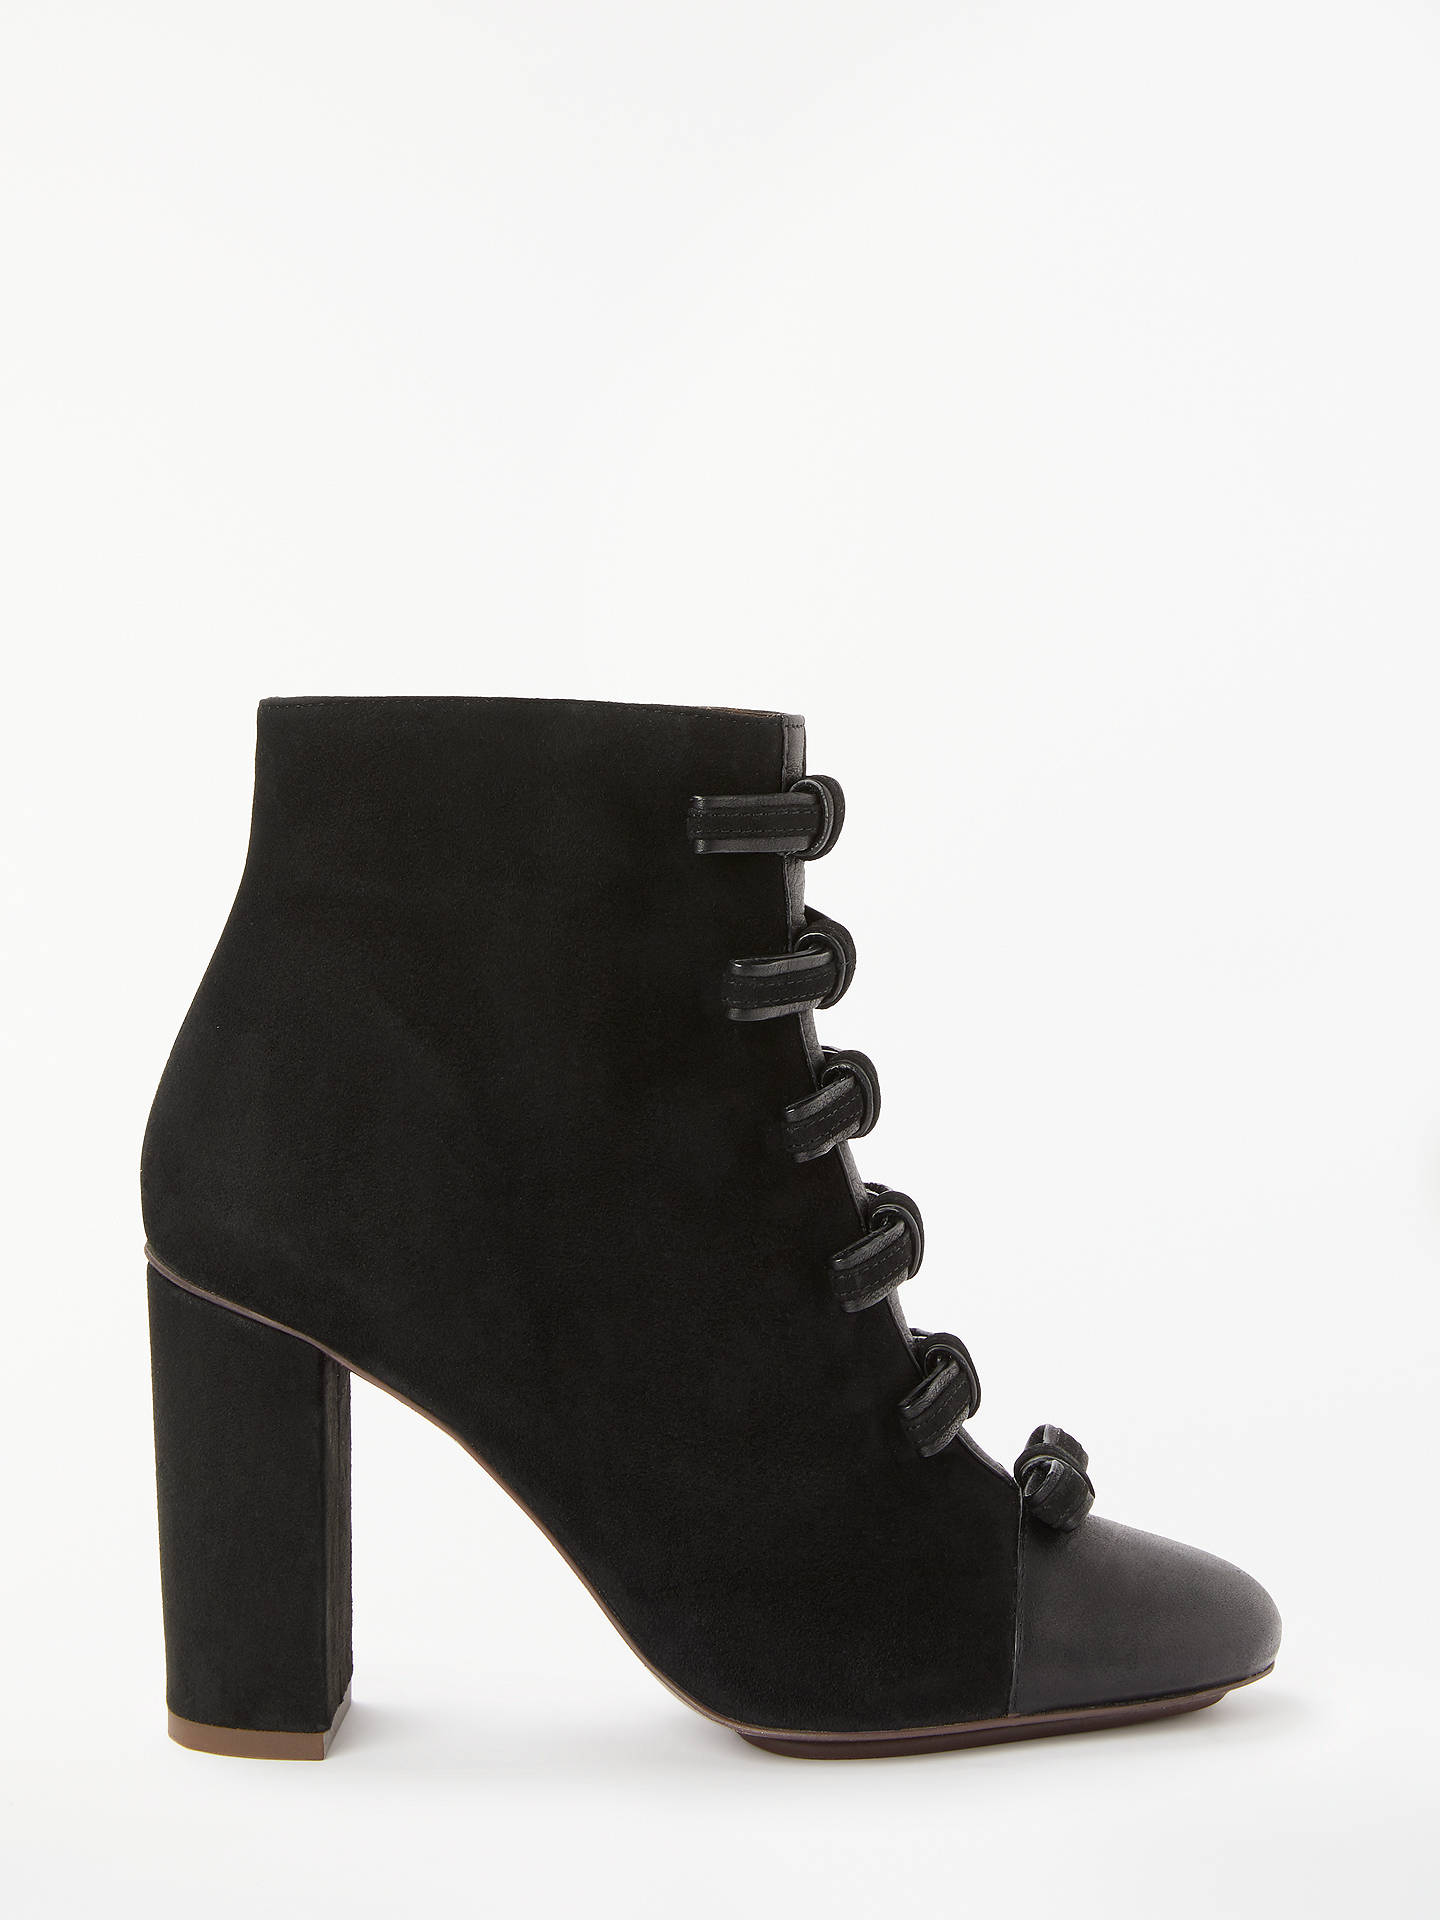 101c01c0c057d Buy See By Chloé Bow Front Block Heel Ankle Boots